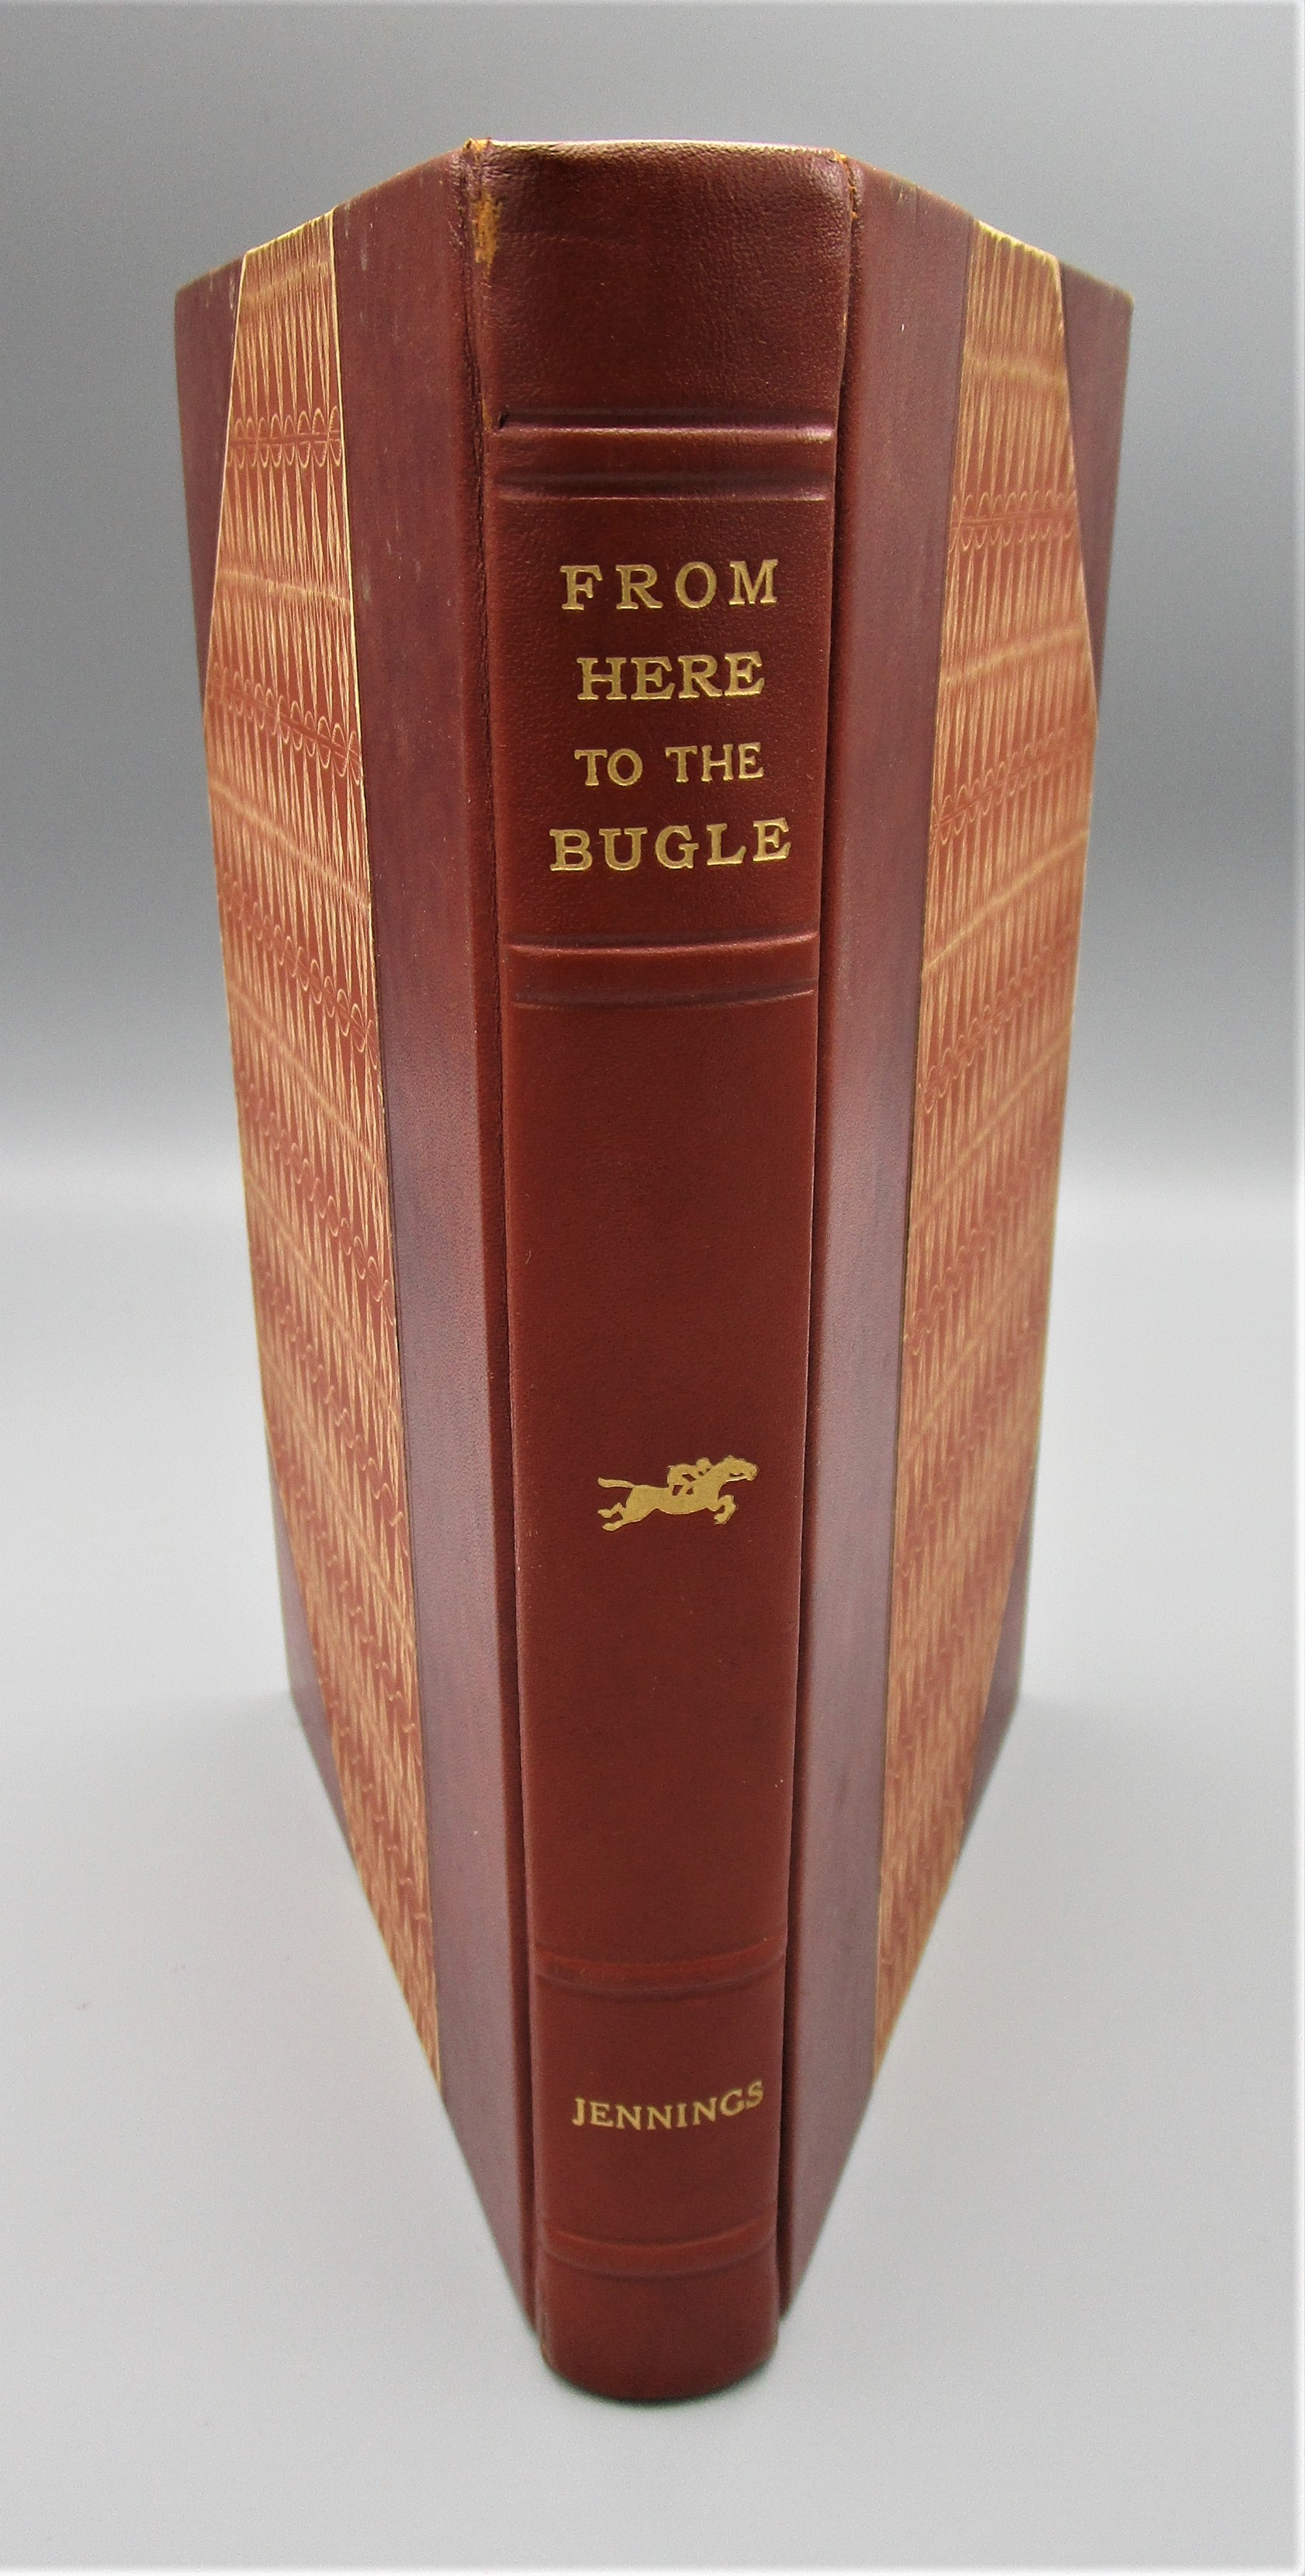 FROM HERE TO THE BUGLE, by Frank Jennings & Milton Menasco - 1949 [Signed 1st Ed]